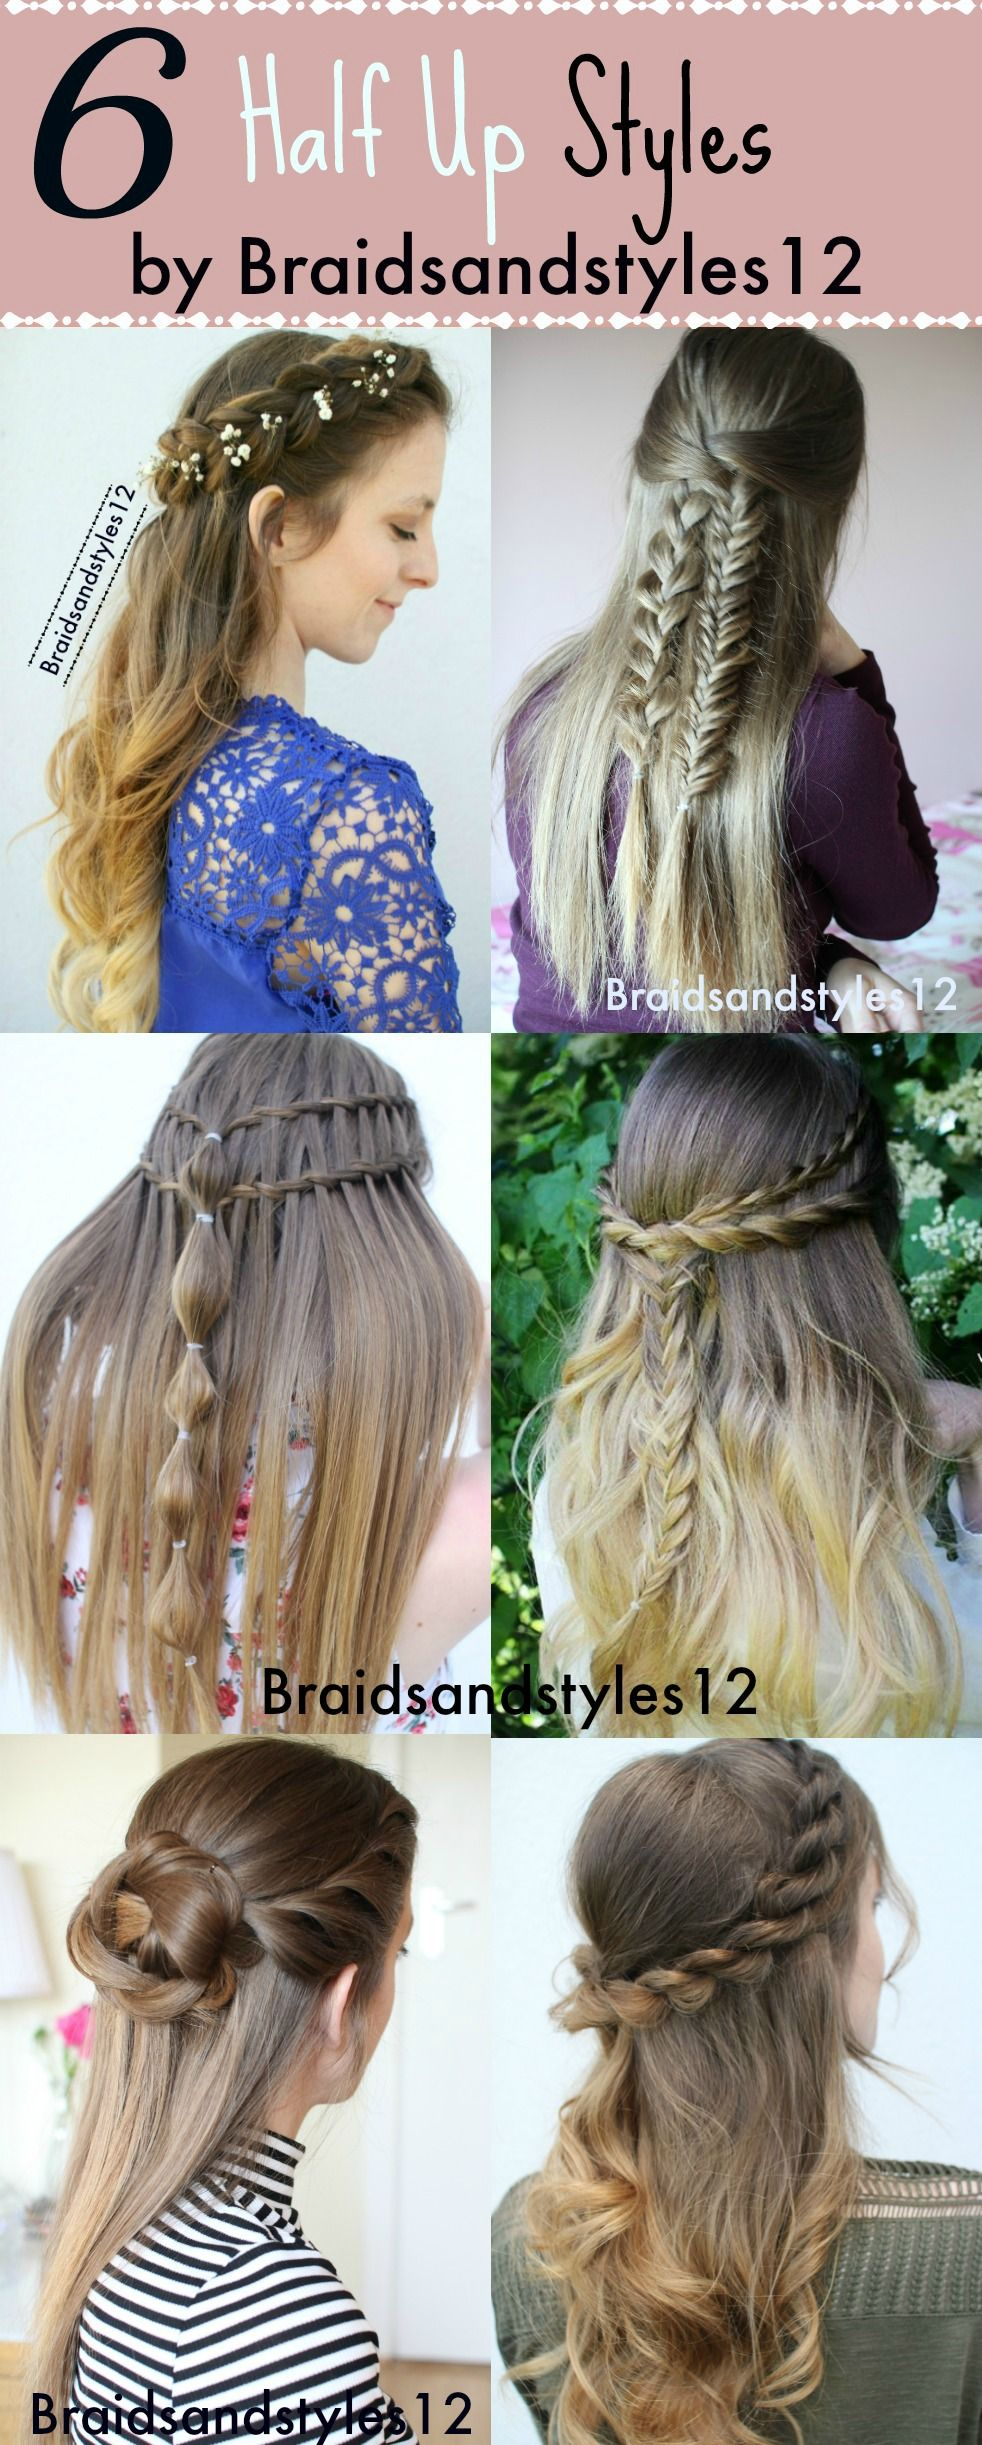 Braidsandstyles braid hairstyles and diy hair